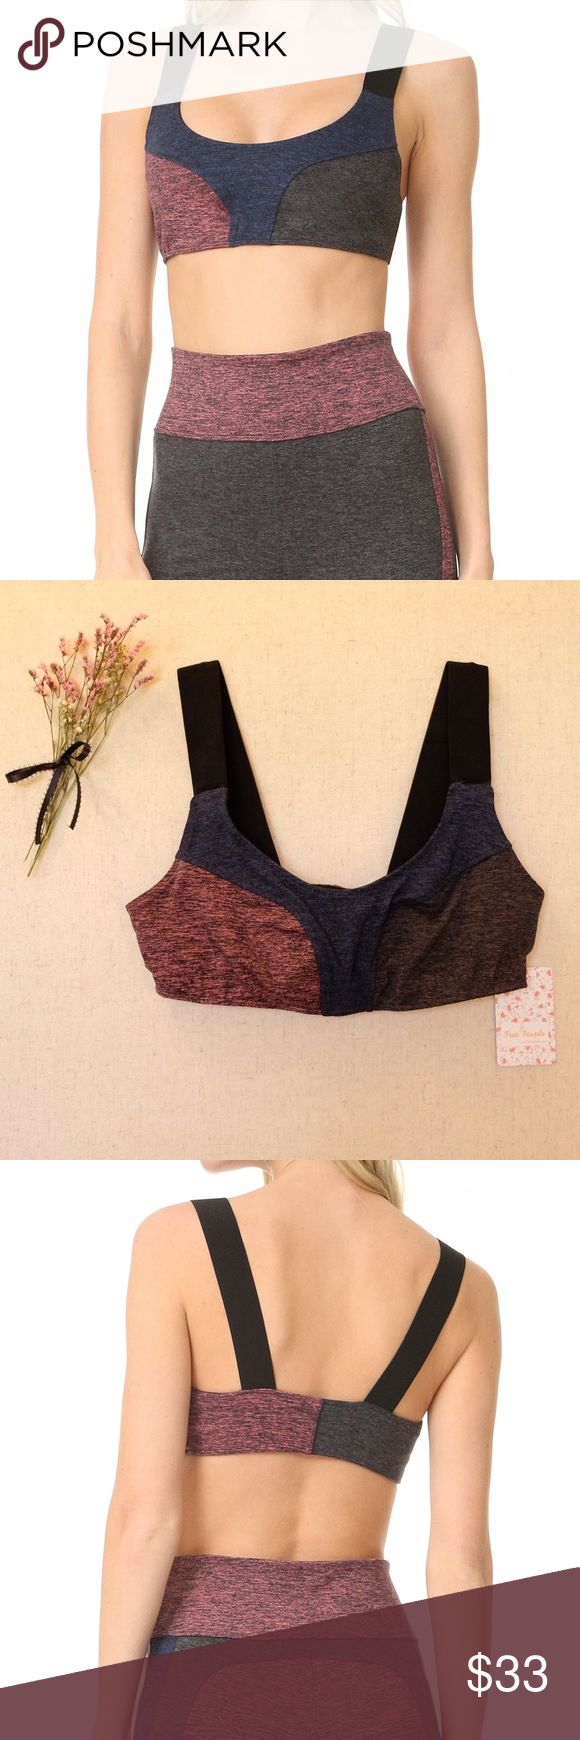 FREE PEOPLE Movement Dylan Sports Bra, Small, BNWT Brand New with Tags! Never Been Worn.  Crafted from double-brushed heathered jersey, this sports bra features a so-soft fabric with super moisture-wicking power to keep you dry during your toughest workout. Full coverage front with thick straps for stay-put support. *By FP Movement  Size: Small Color: Color Block Multi Outer Material: 87% Polyester/ 13% Spandex Lining Material: 94% Polyester/ 6% Spandex  All of my items come from a smoke…